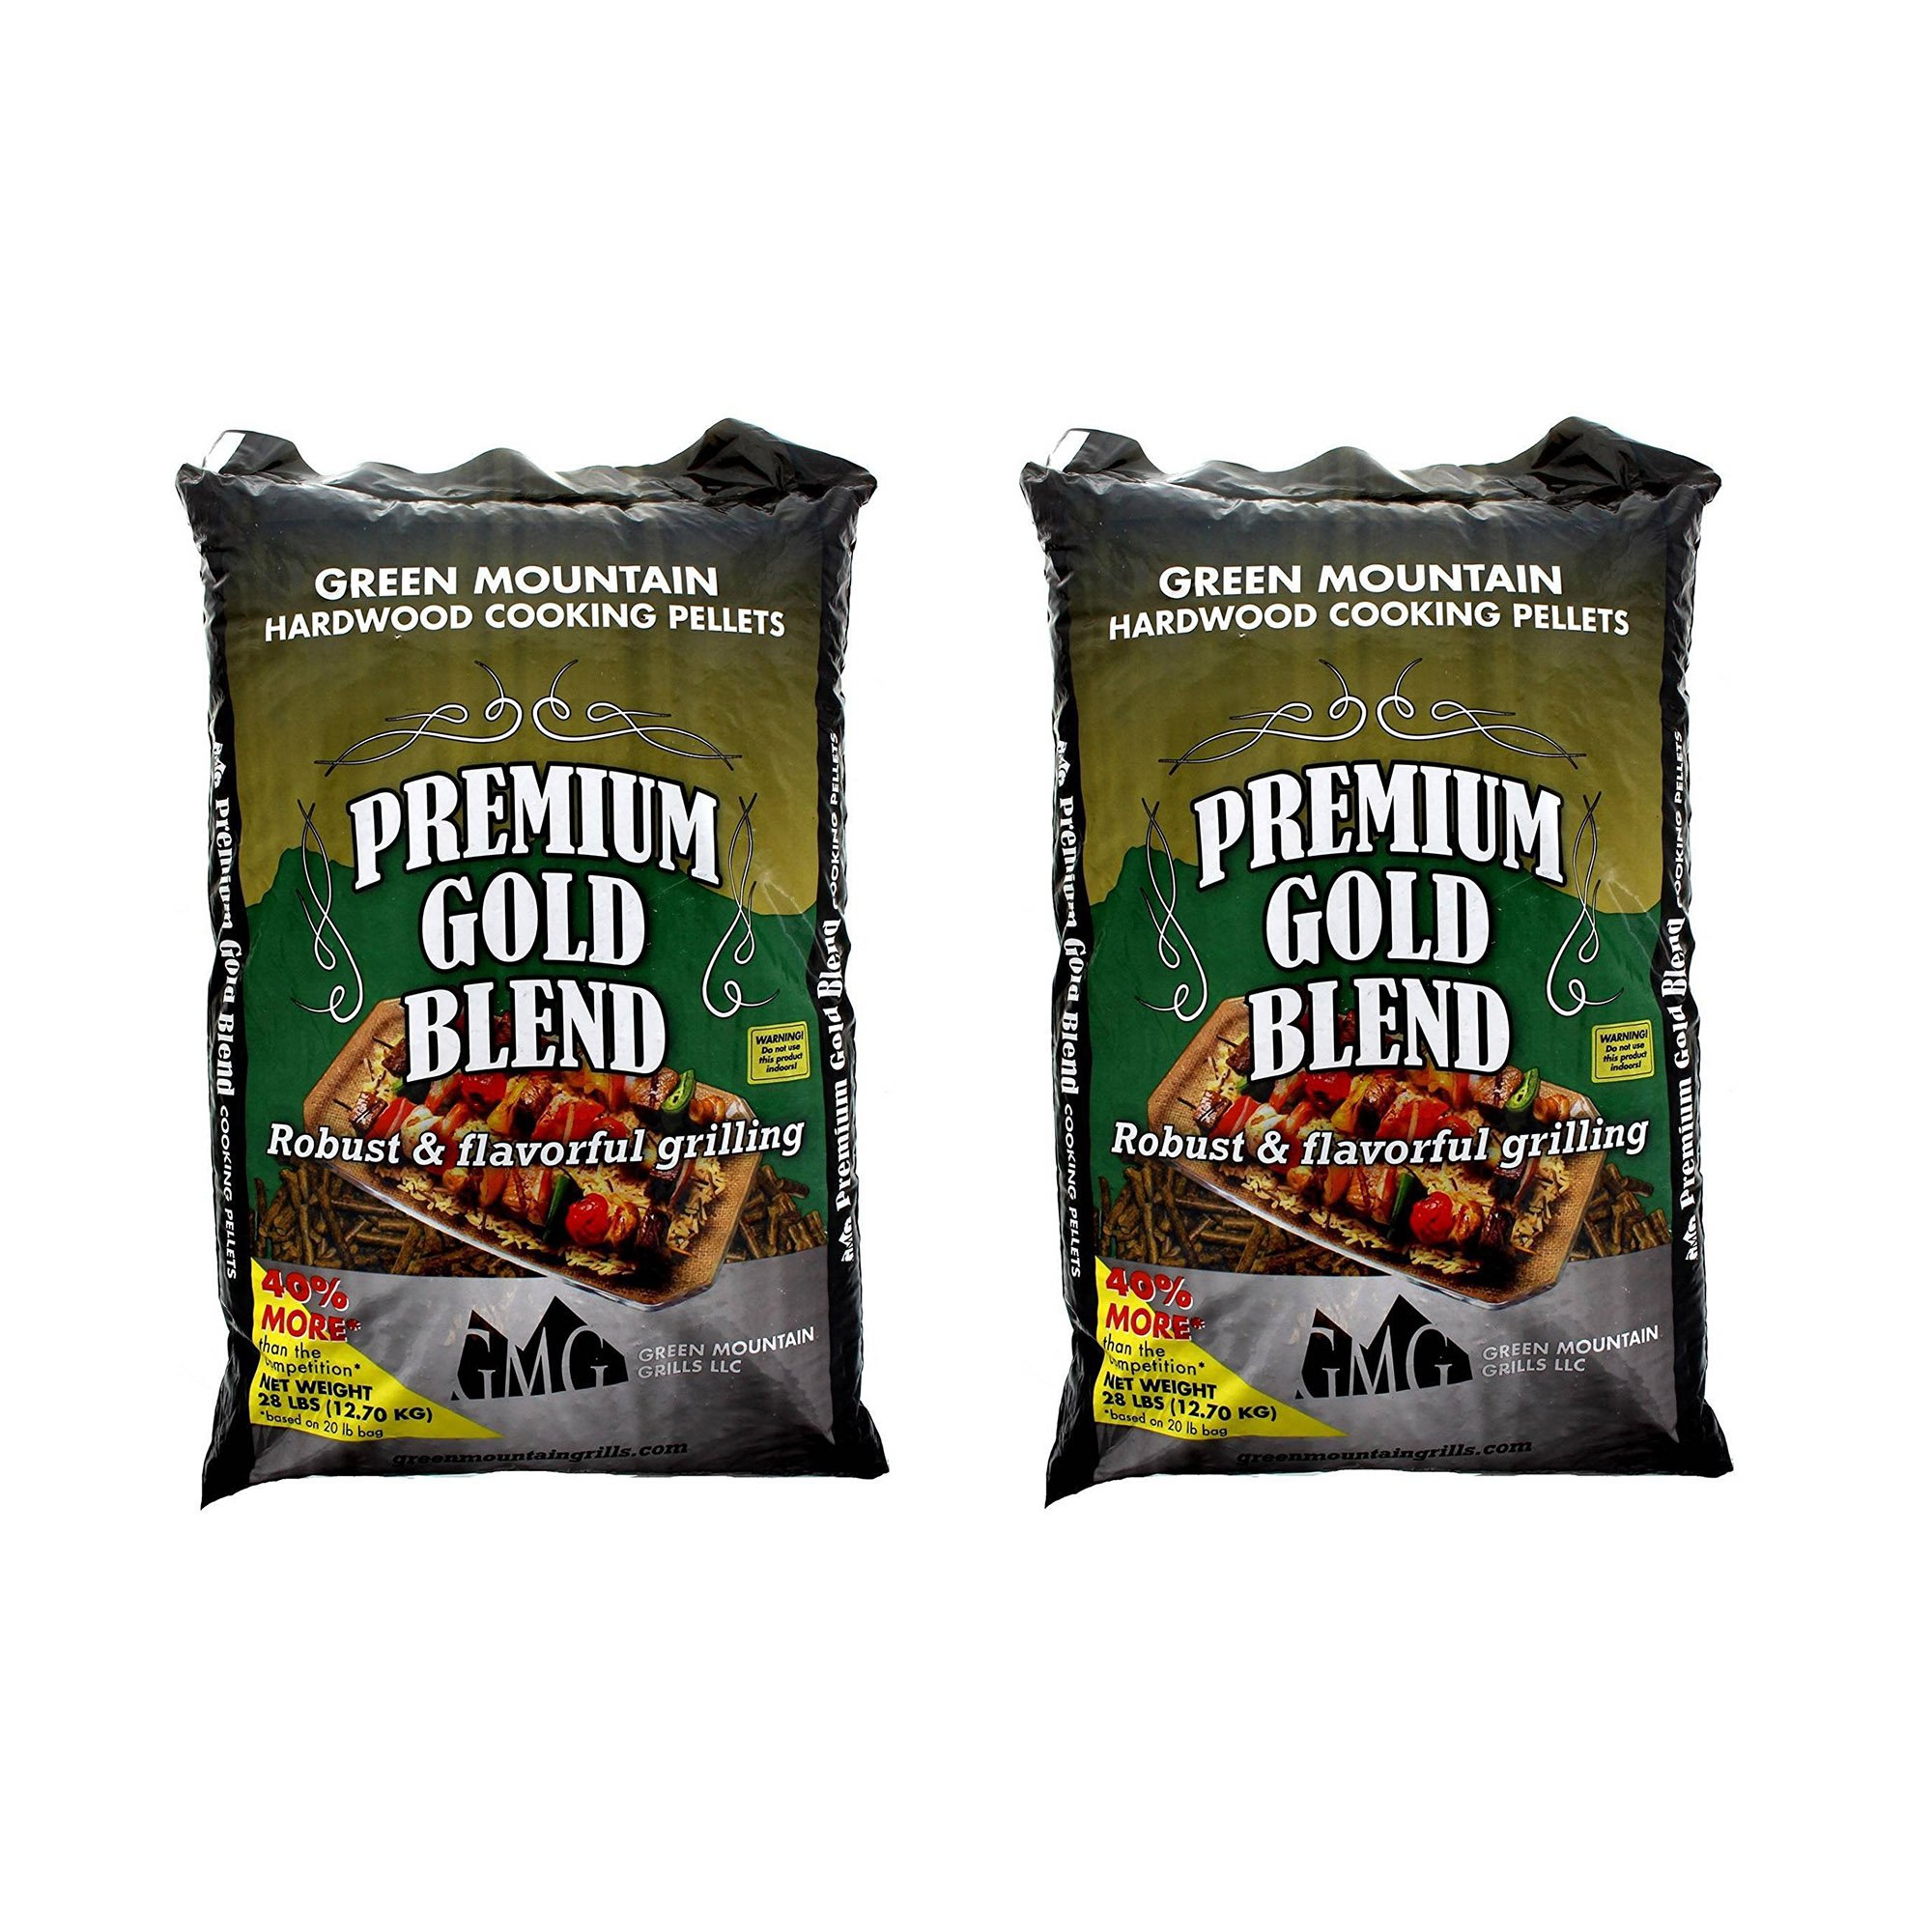 Green Mountain Grills Premium Gold Blend Grilling Pellets (2 Pack) by Green Mountain Grills